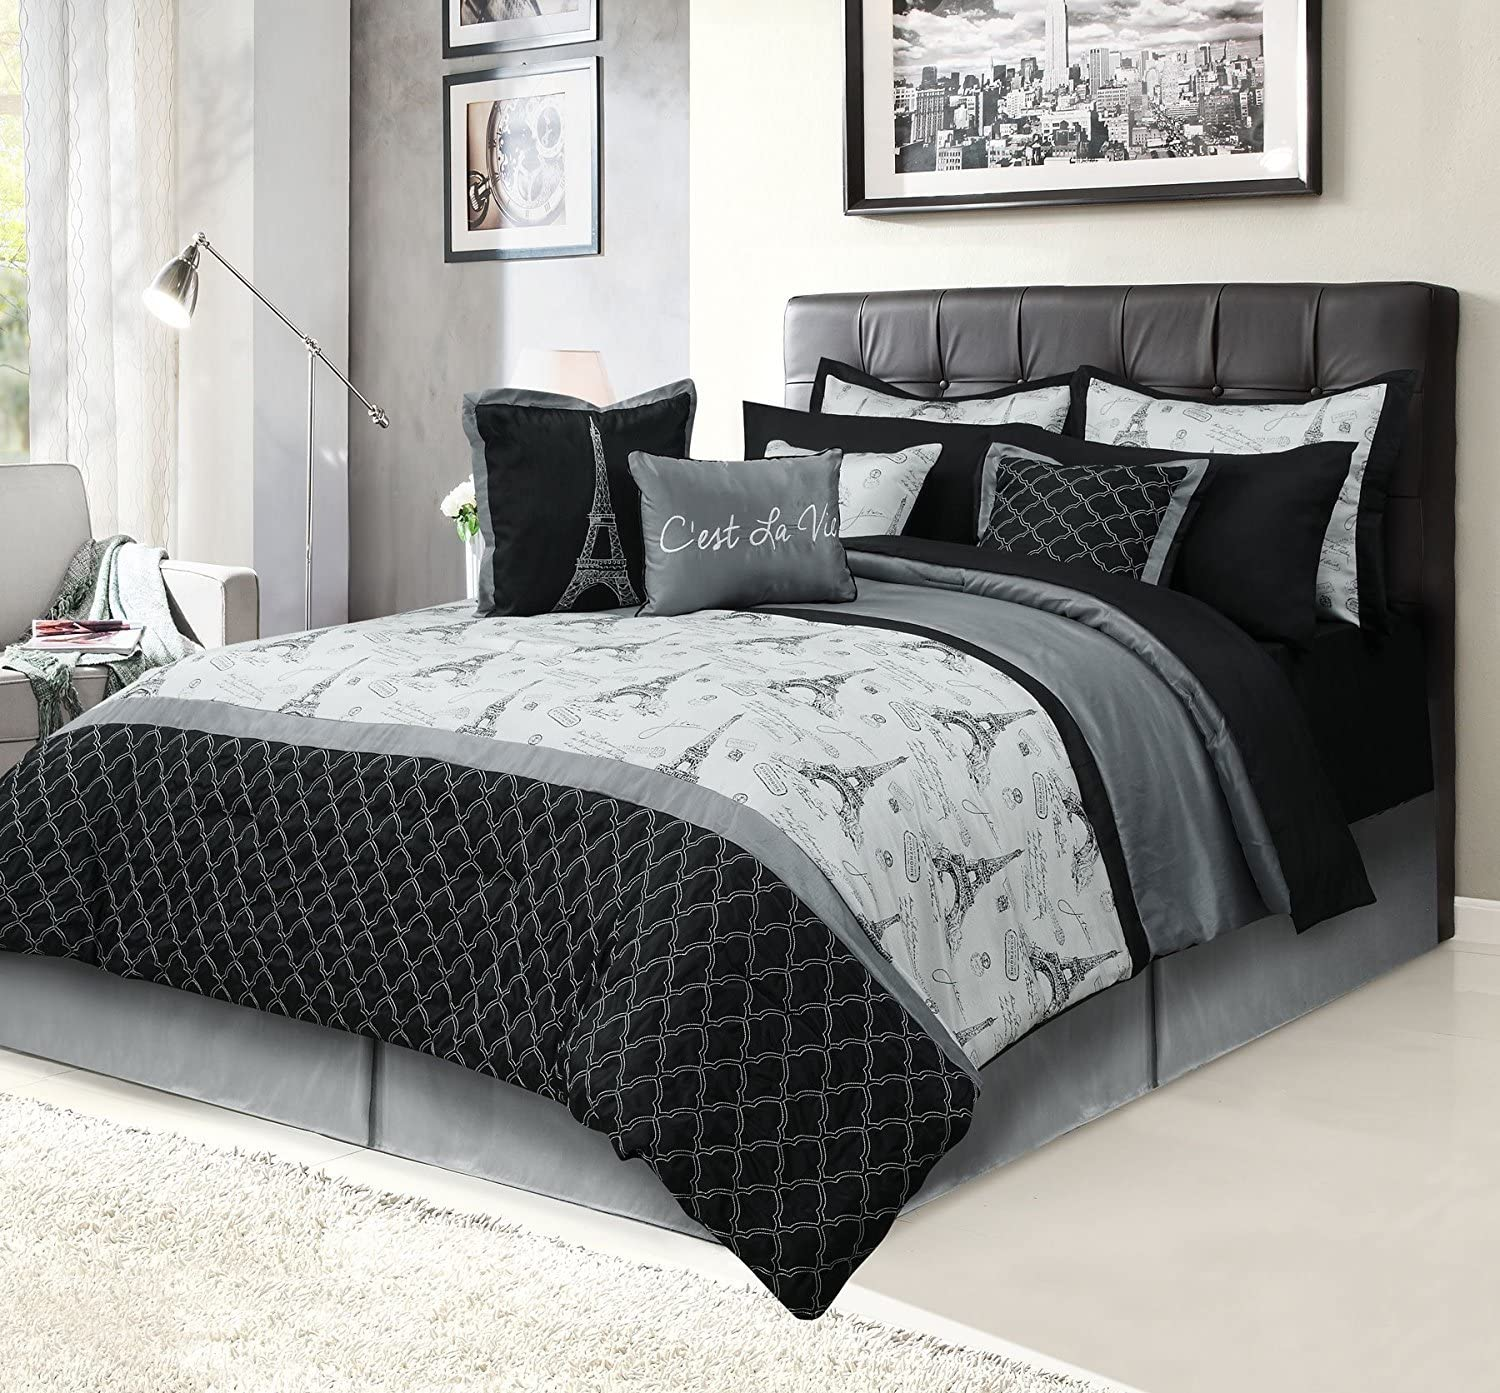 HowPlumb Paris Queen Bedding Bed in a Bag 12 Piece Set with Sheets, Eiffel Tower Black and Gray